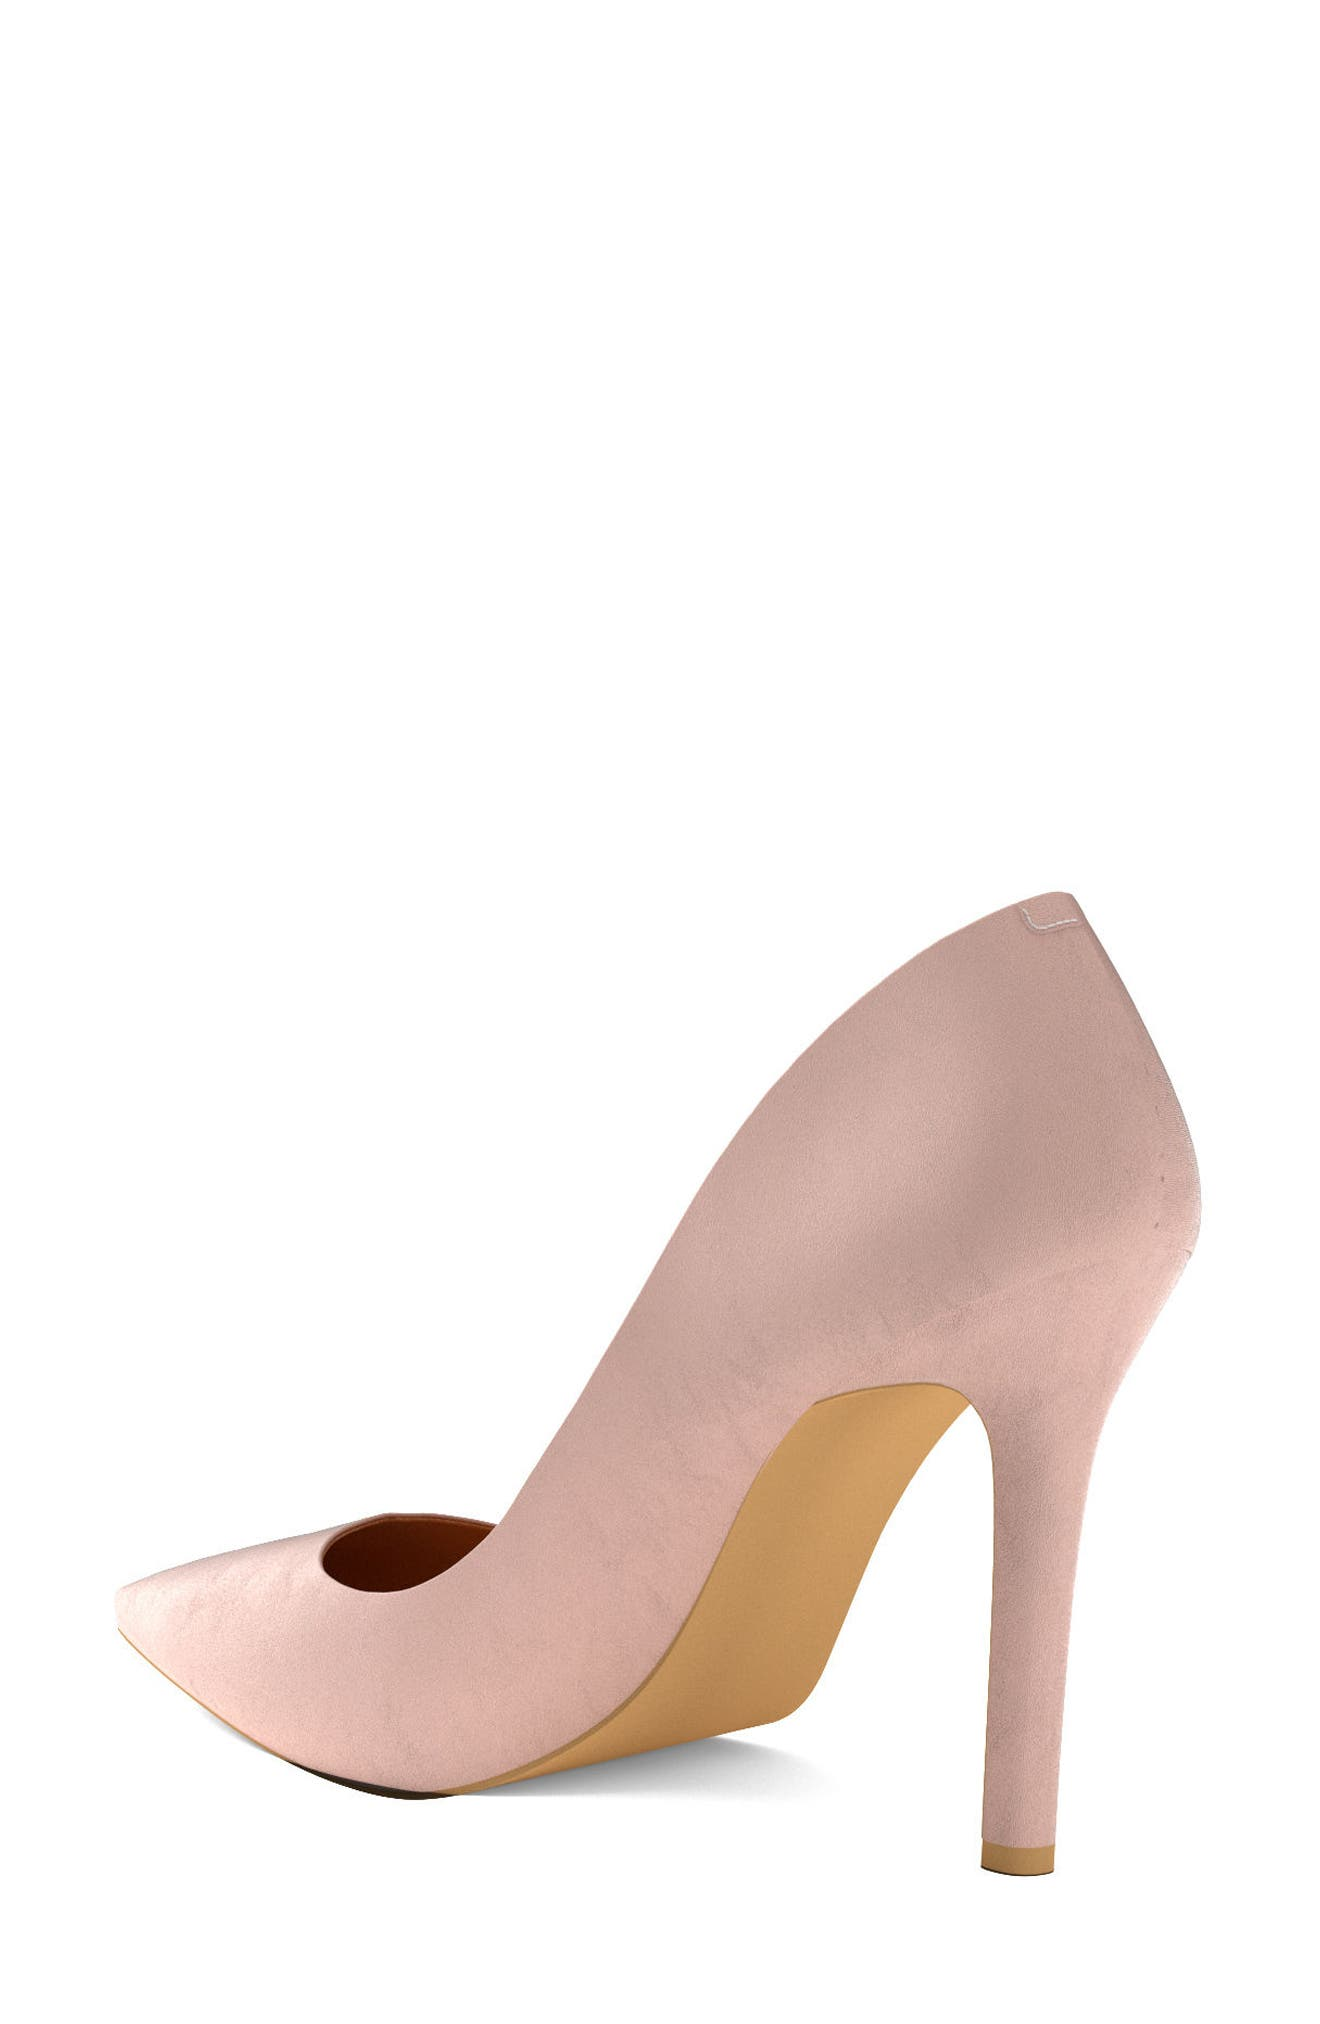 Pointy Toe Pump,                             Alternate thumbnail 2, color,                             Blush Nude Leather